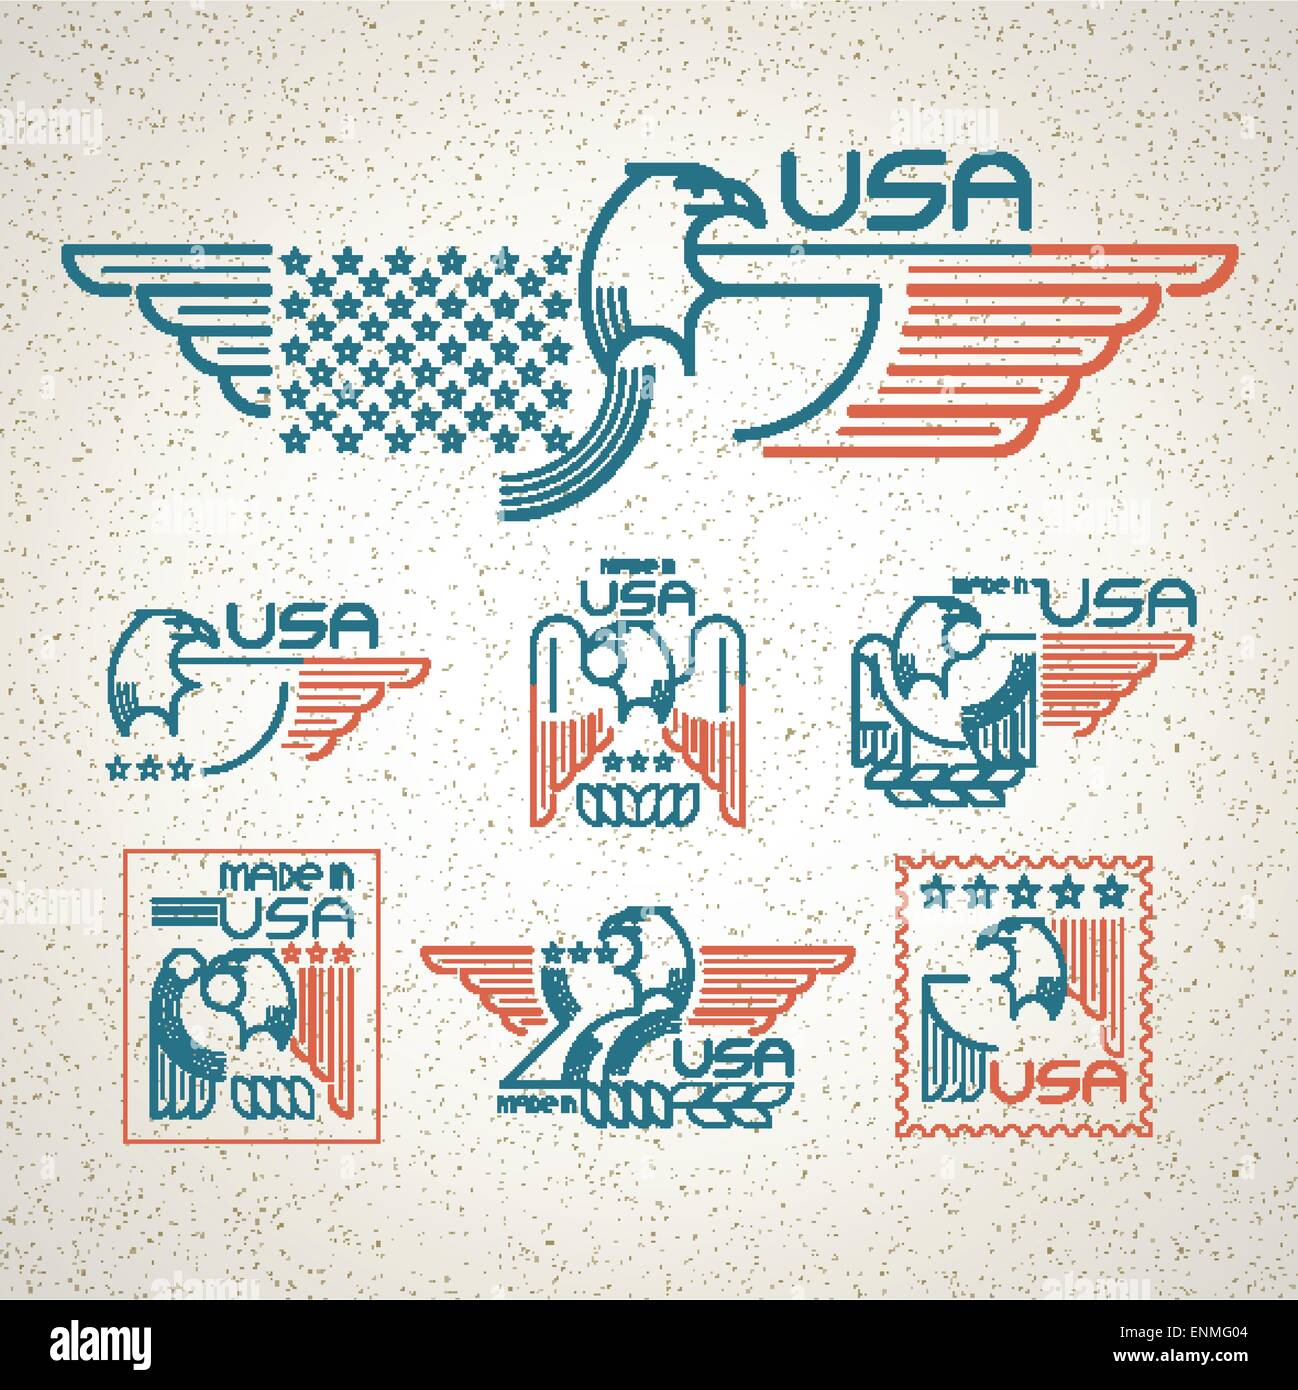 Made in the usa symbol with american flag and eagle set of made in the usa symbol with american flag and eagle set of templates emblems vector illustration eps 10 buycottarizona